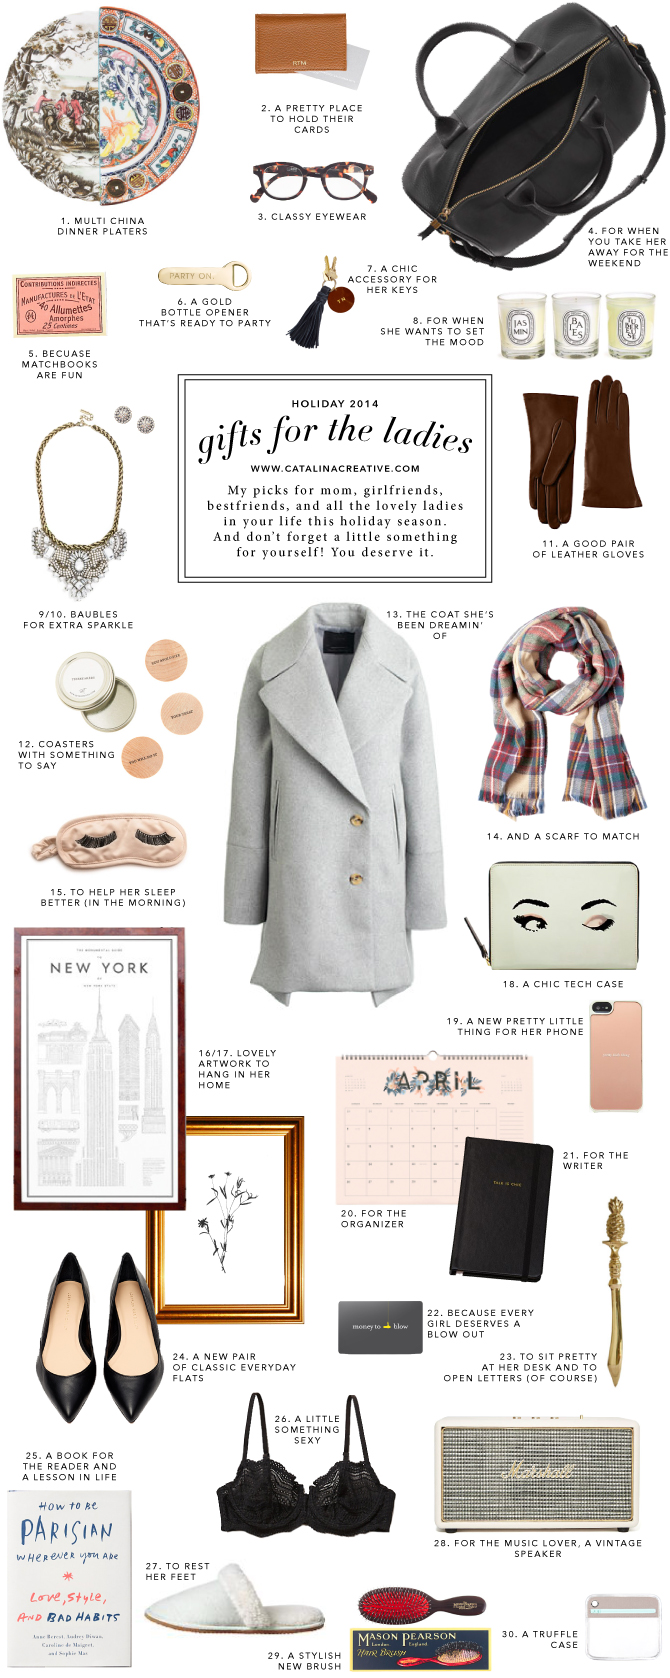 Catalina Creative Holiday 2014 Gift Guide - Ladies